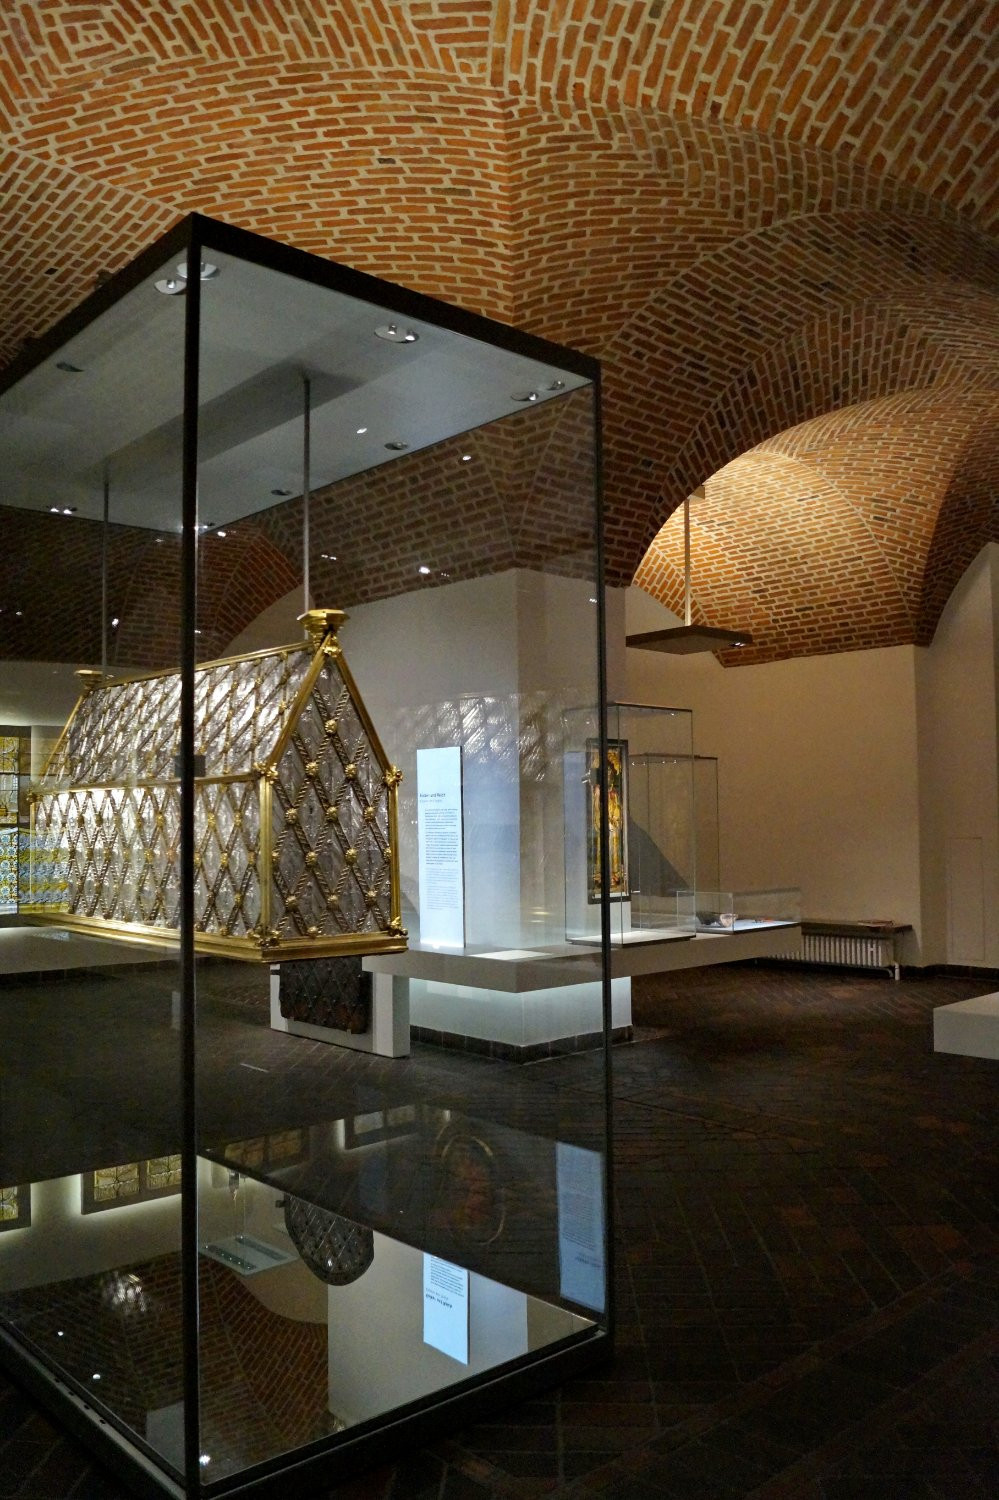 reliquary in the medieval section, just look at the exposed brick vaulted ceilings